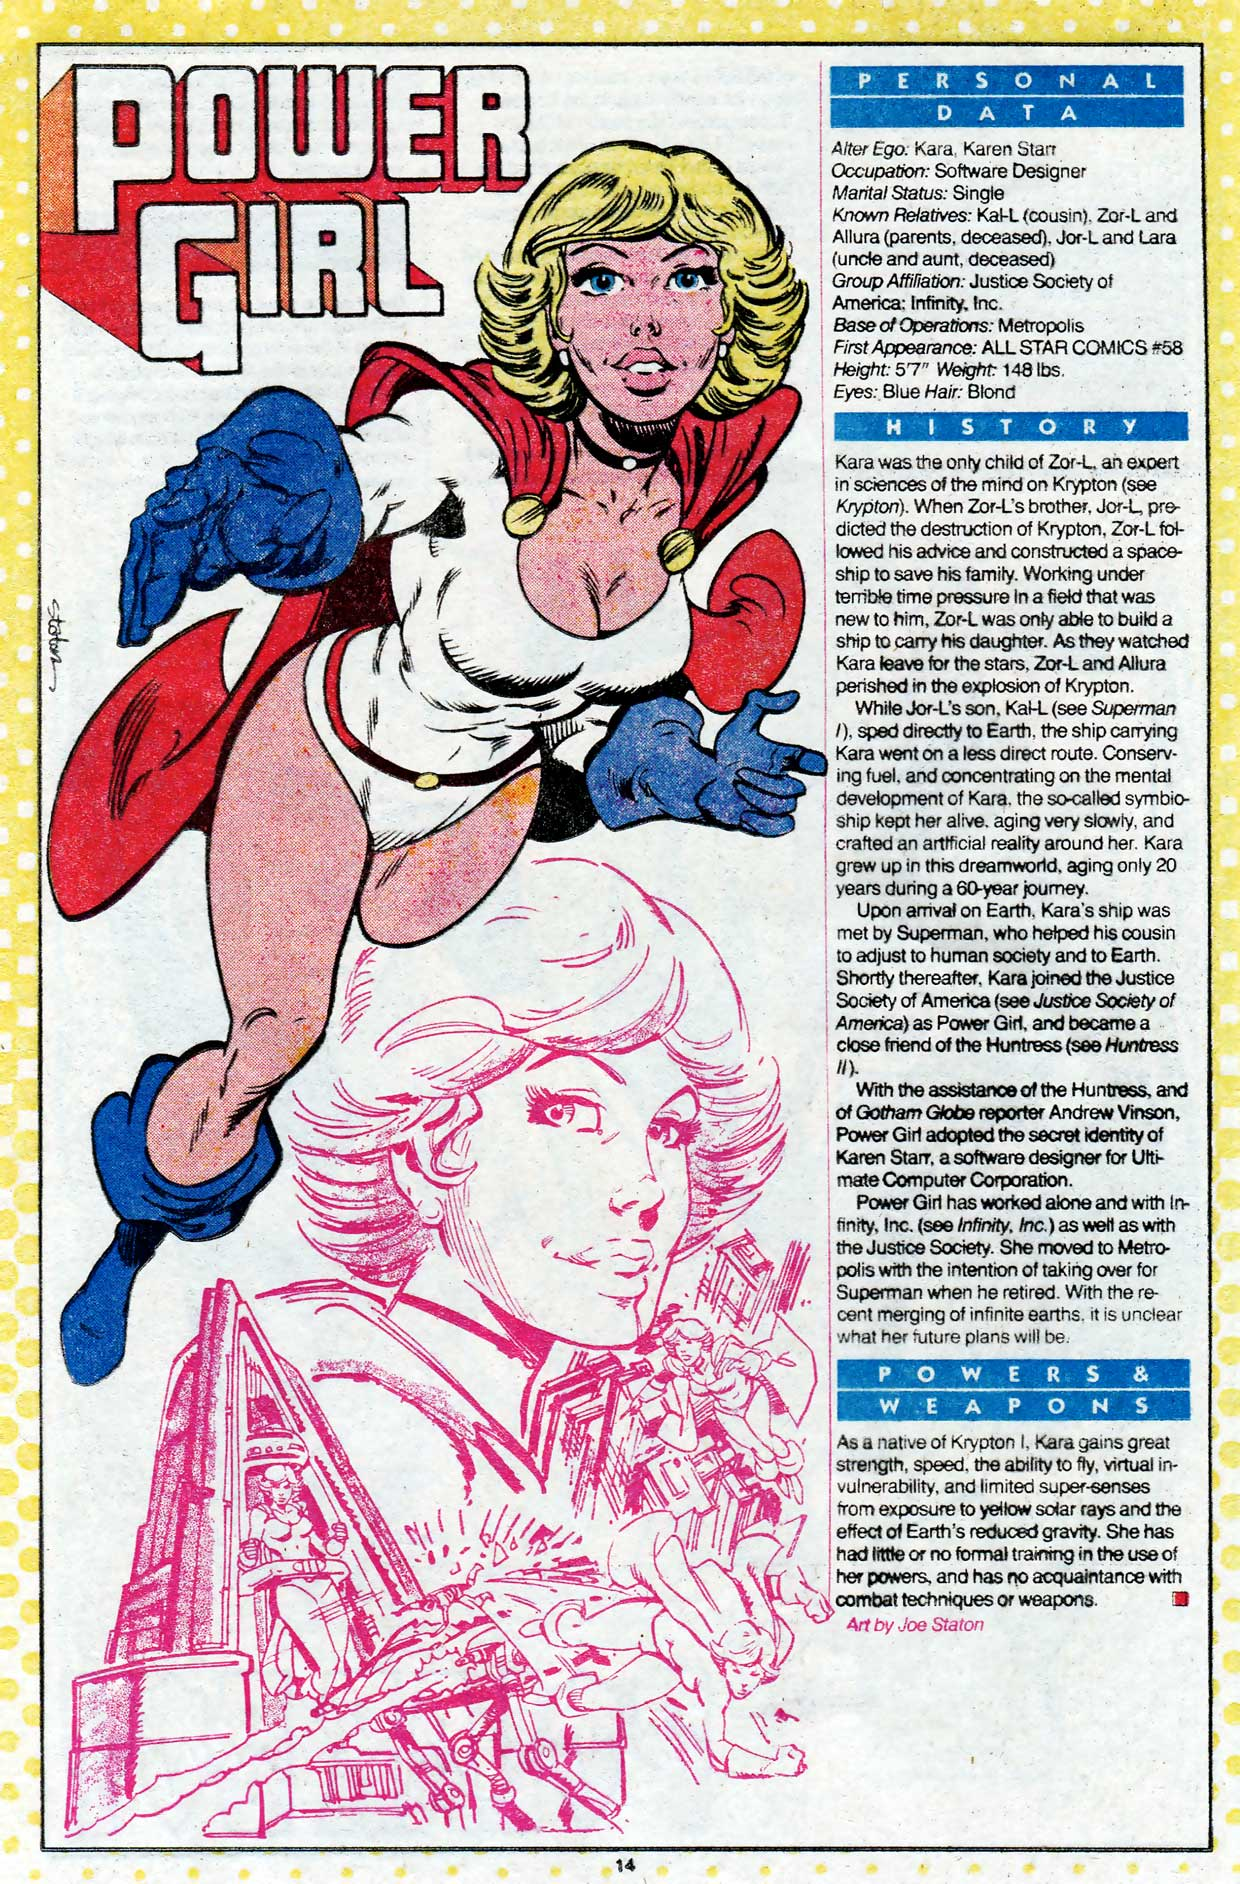 Who's Who Power Girl by Joe Staton